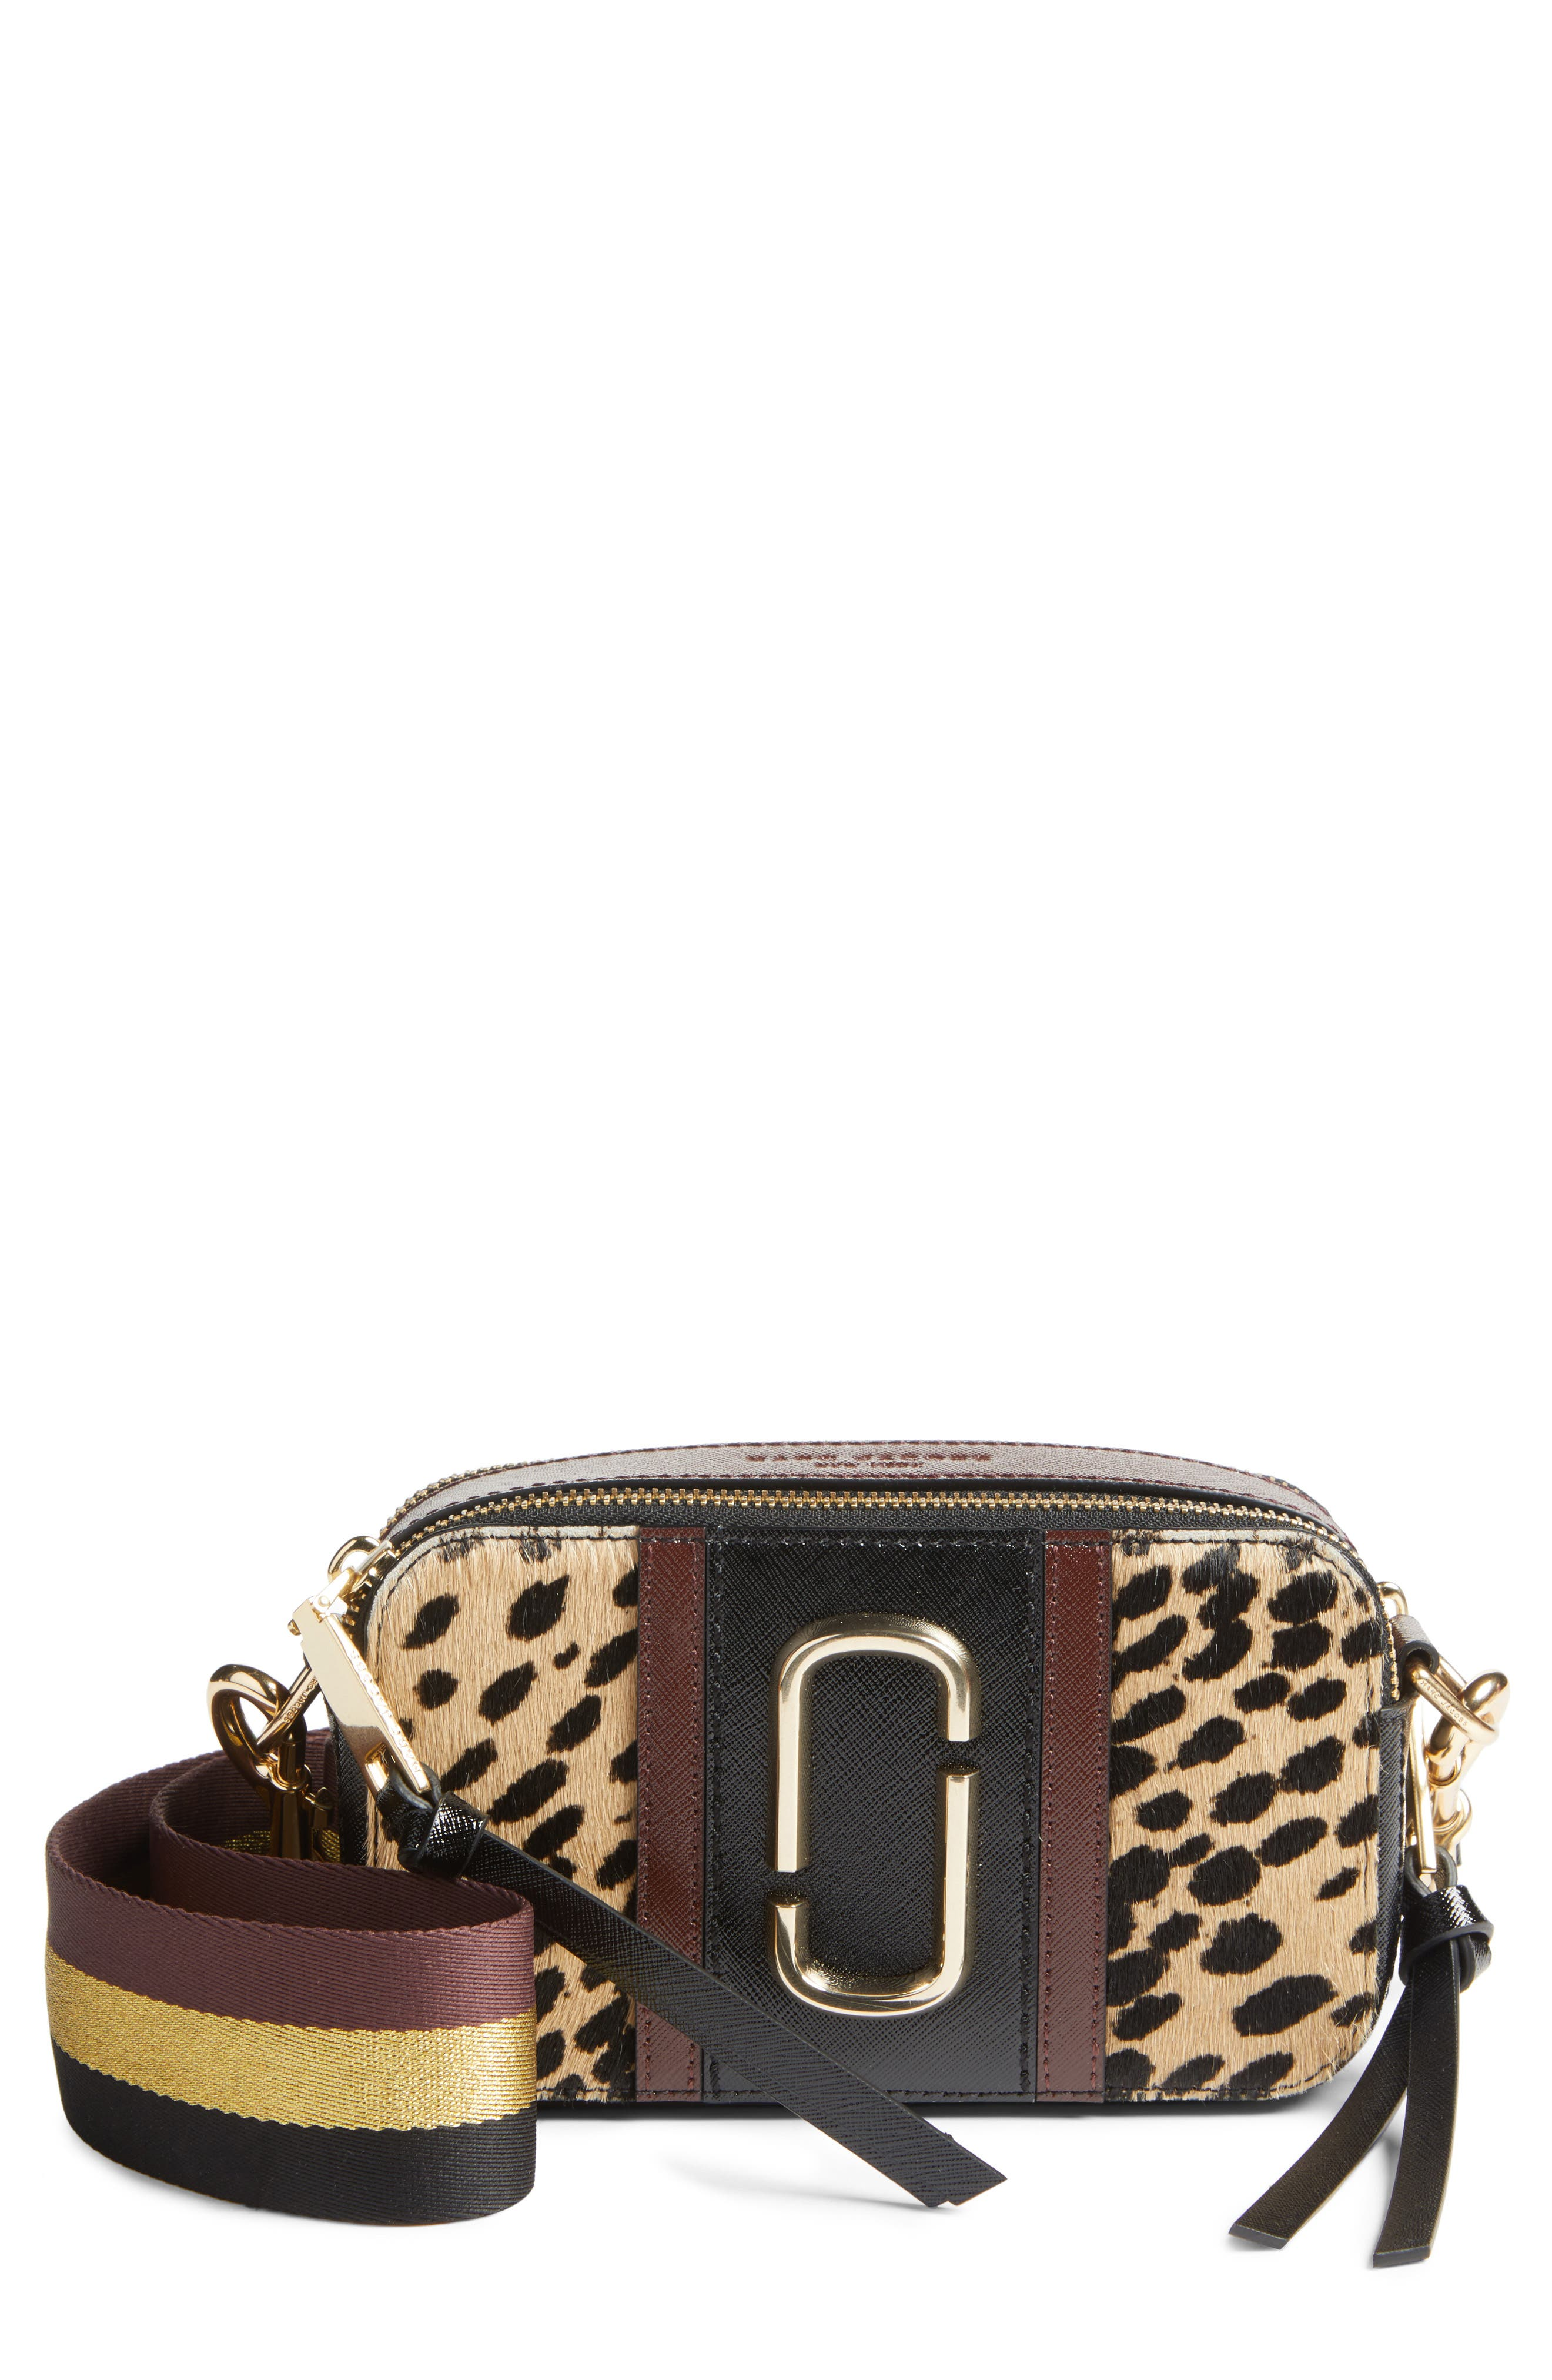 Main Image - MARC JACOBS Snapshot Leopard Crossbody Bag